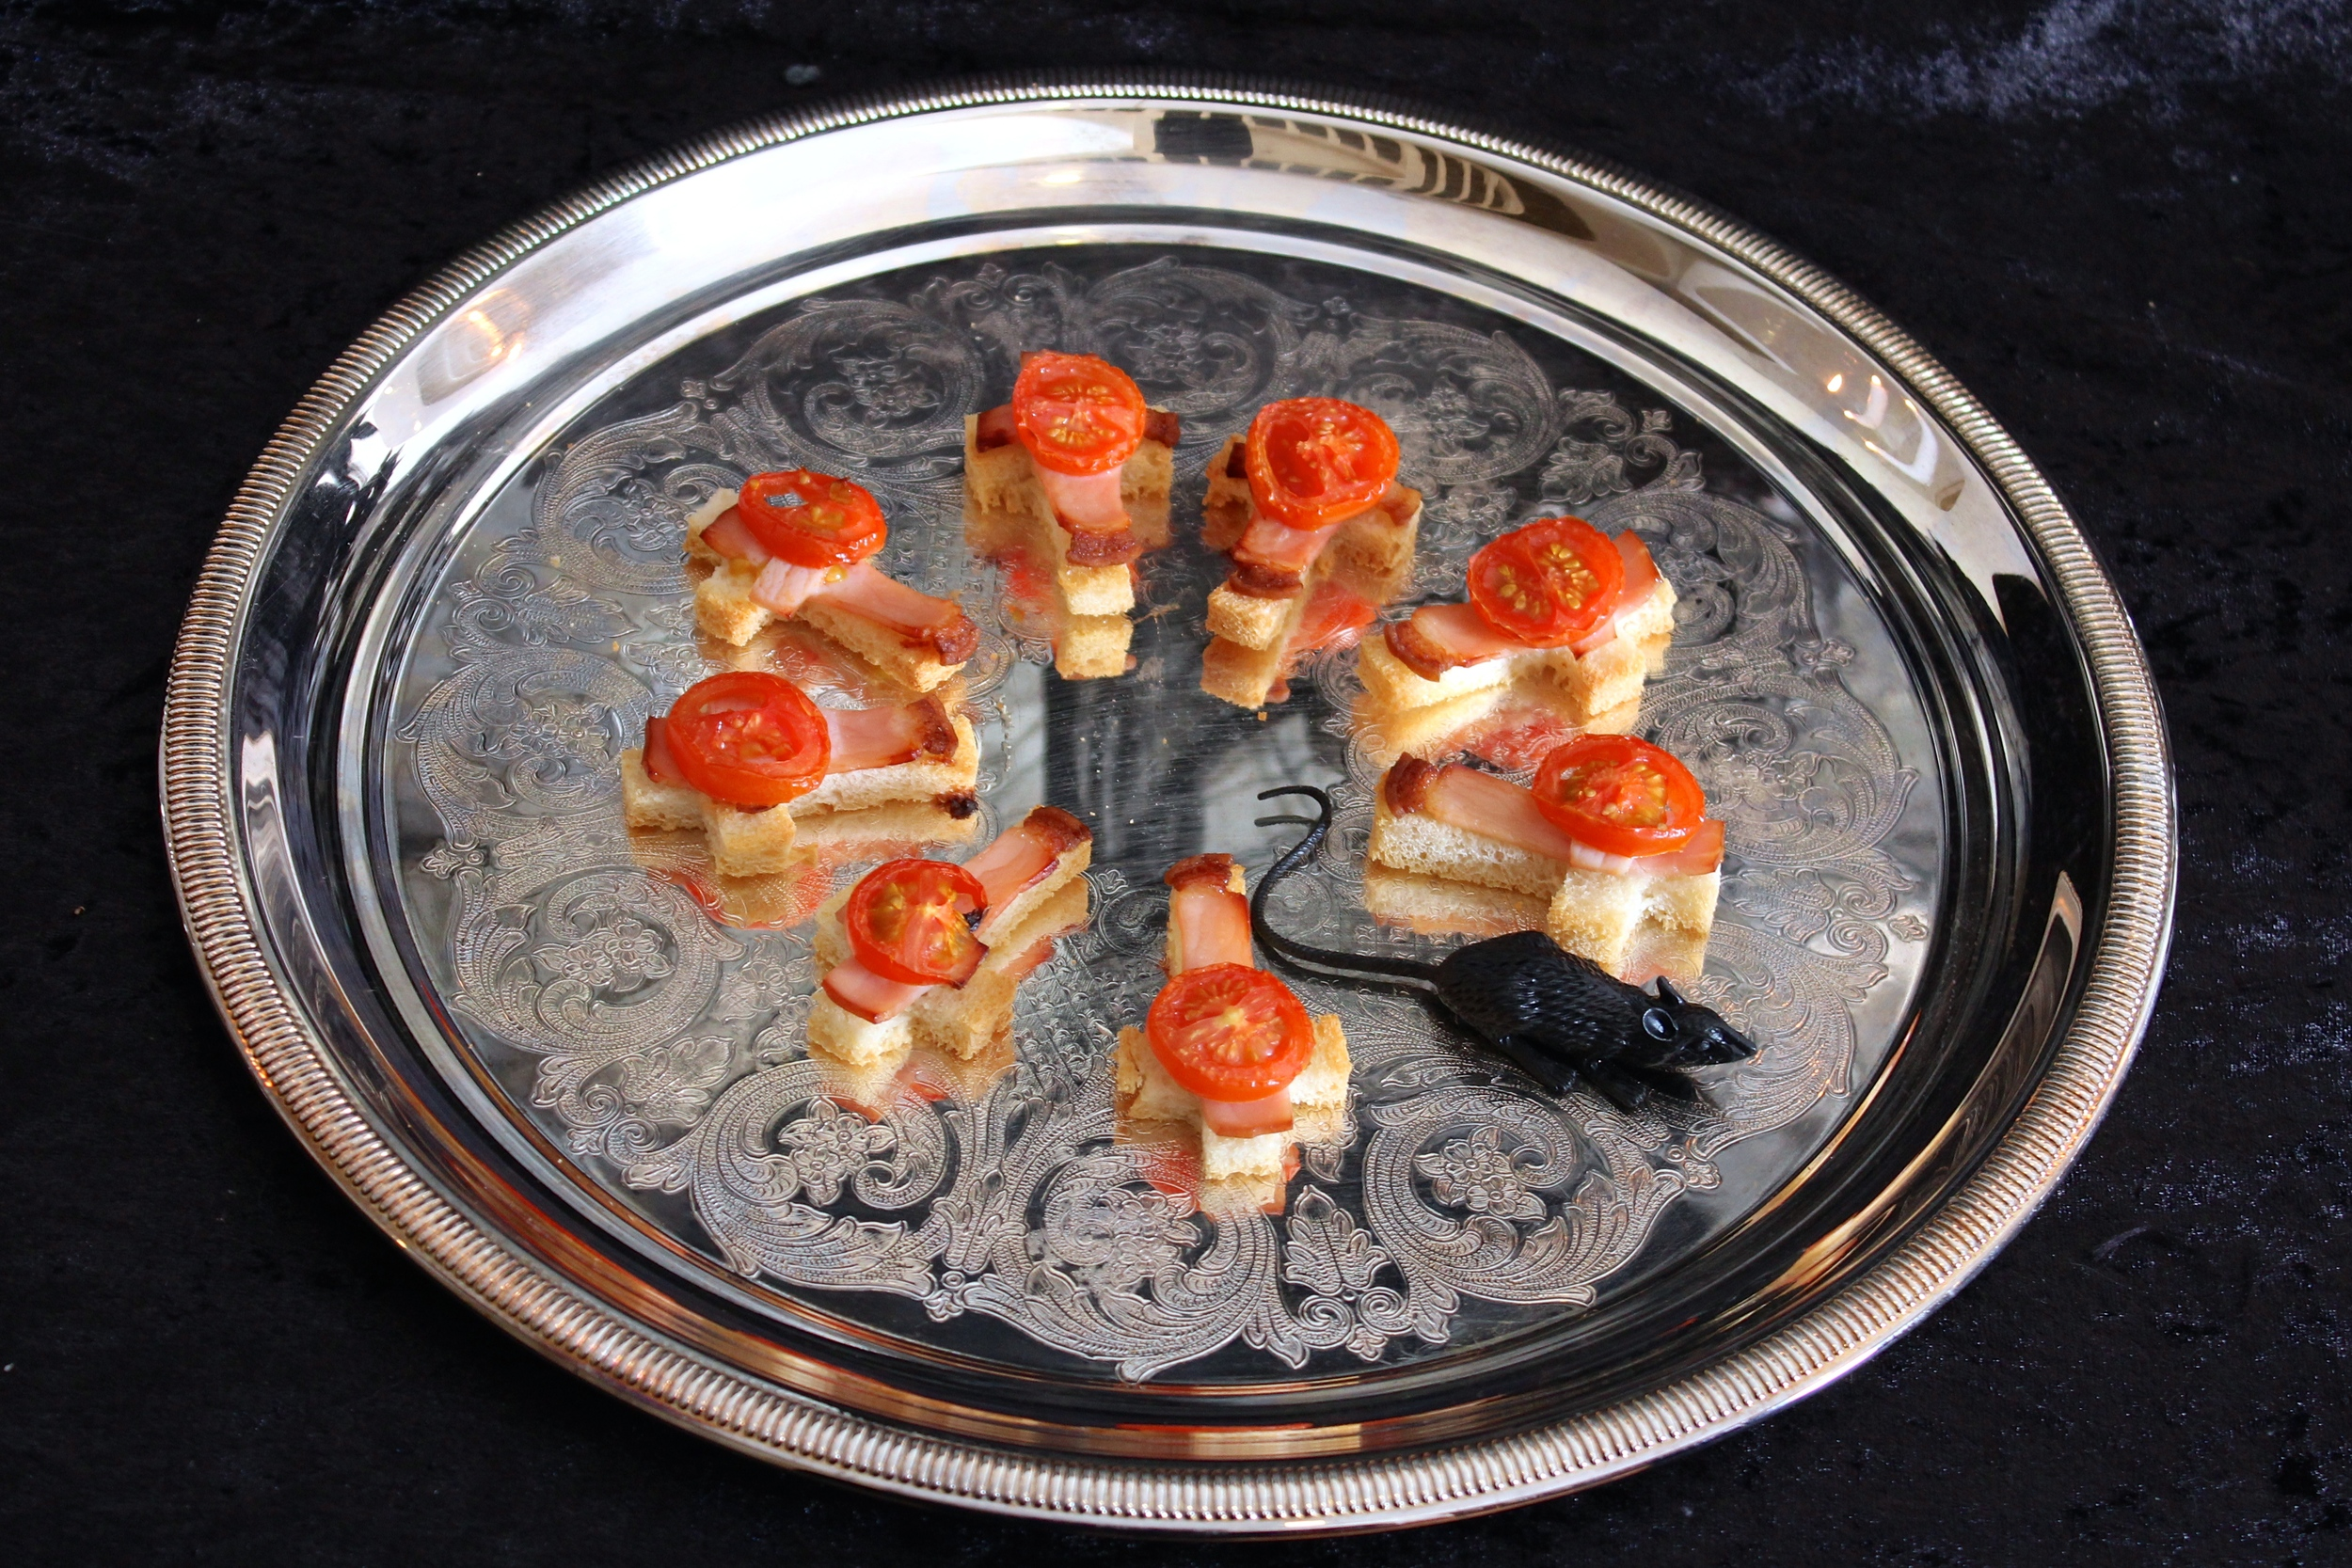 Gothic Dinner Party Toasted Bacon and Tomato